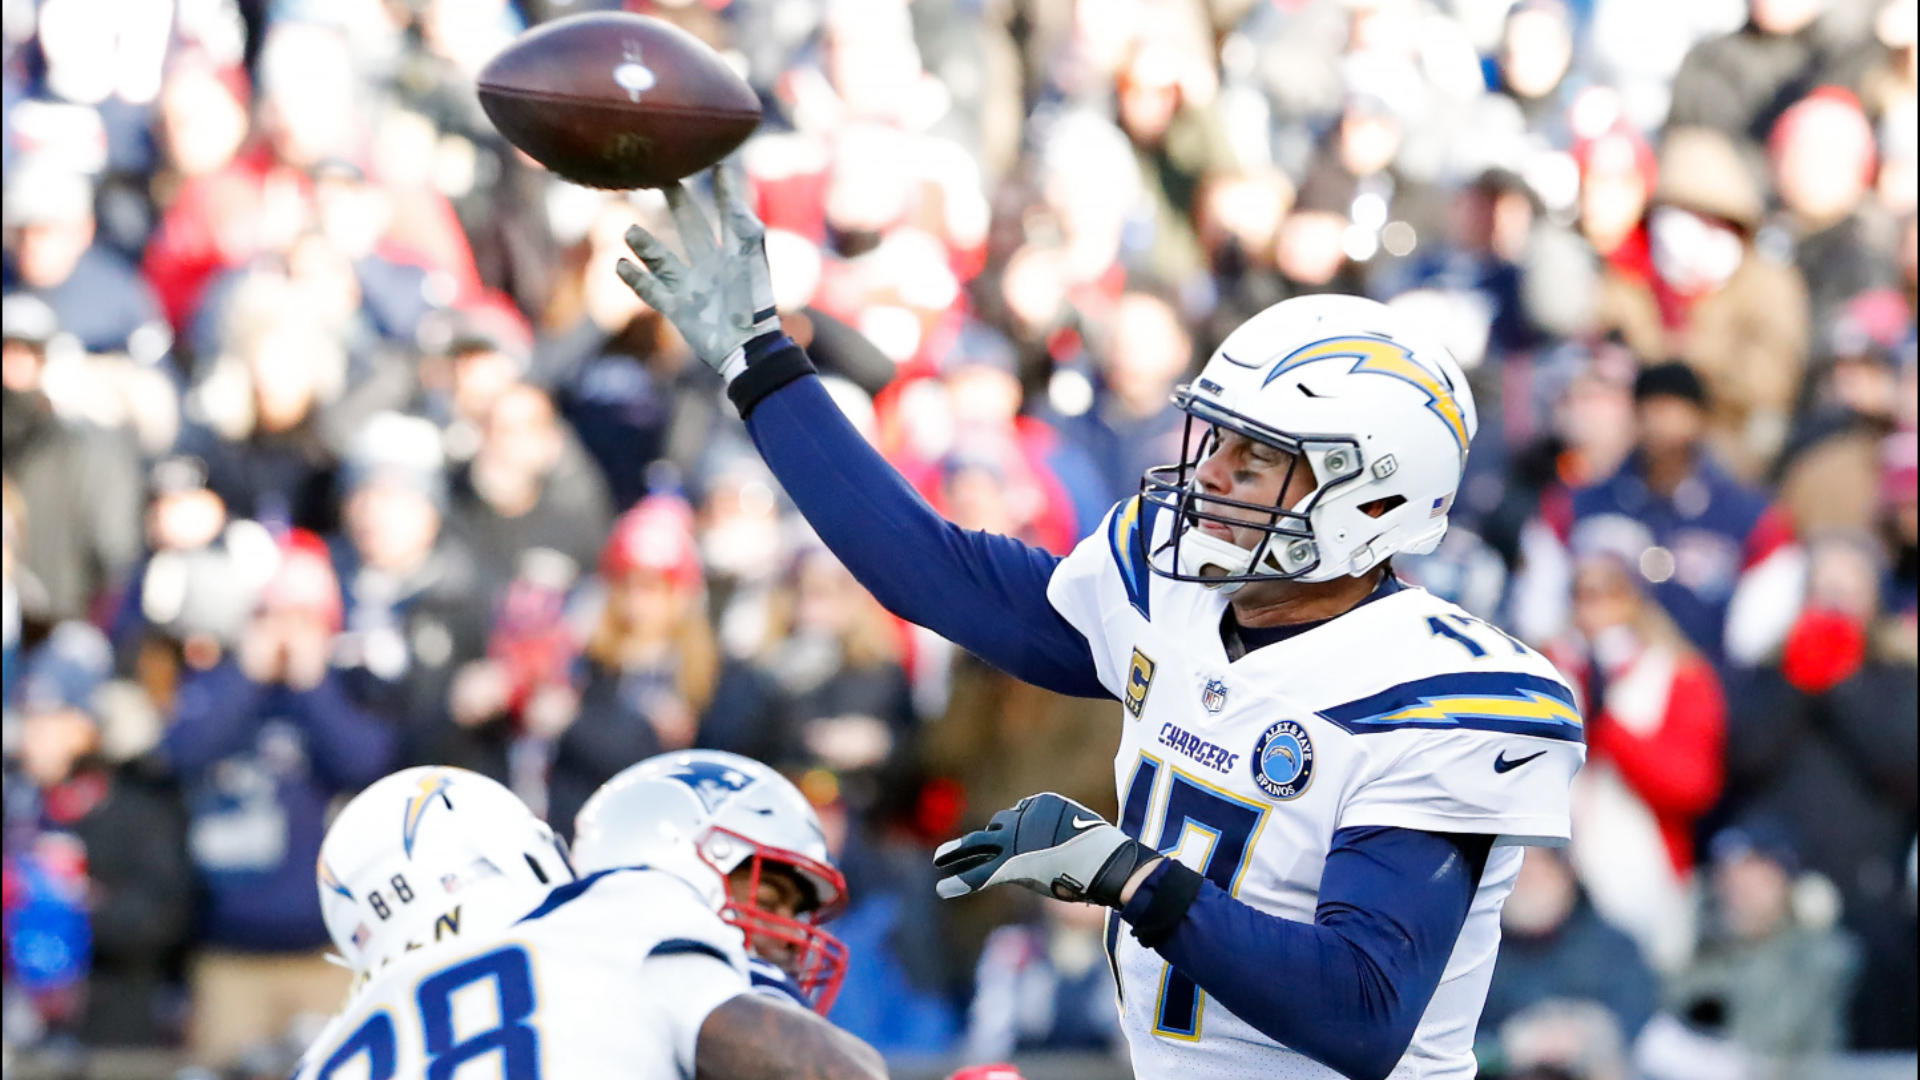 NFL 2019: Here are three moves the Chargers should make to boost their chances of reaching Super Bowl LIV